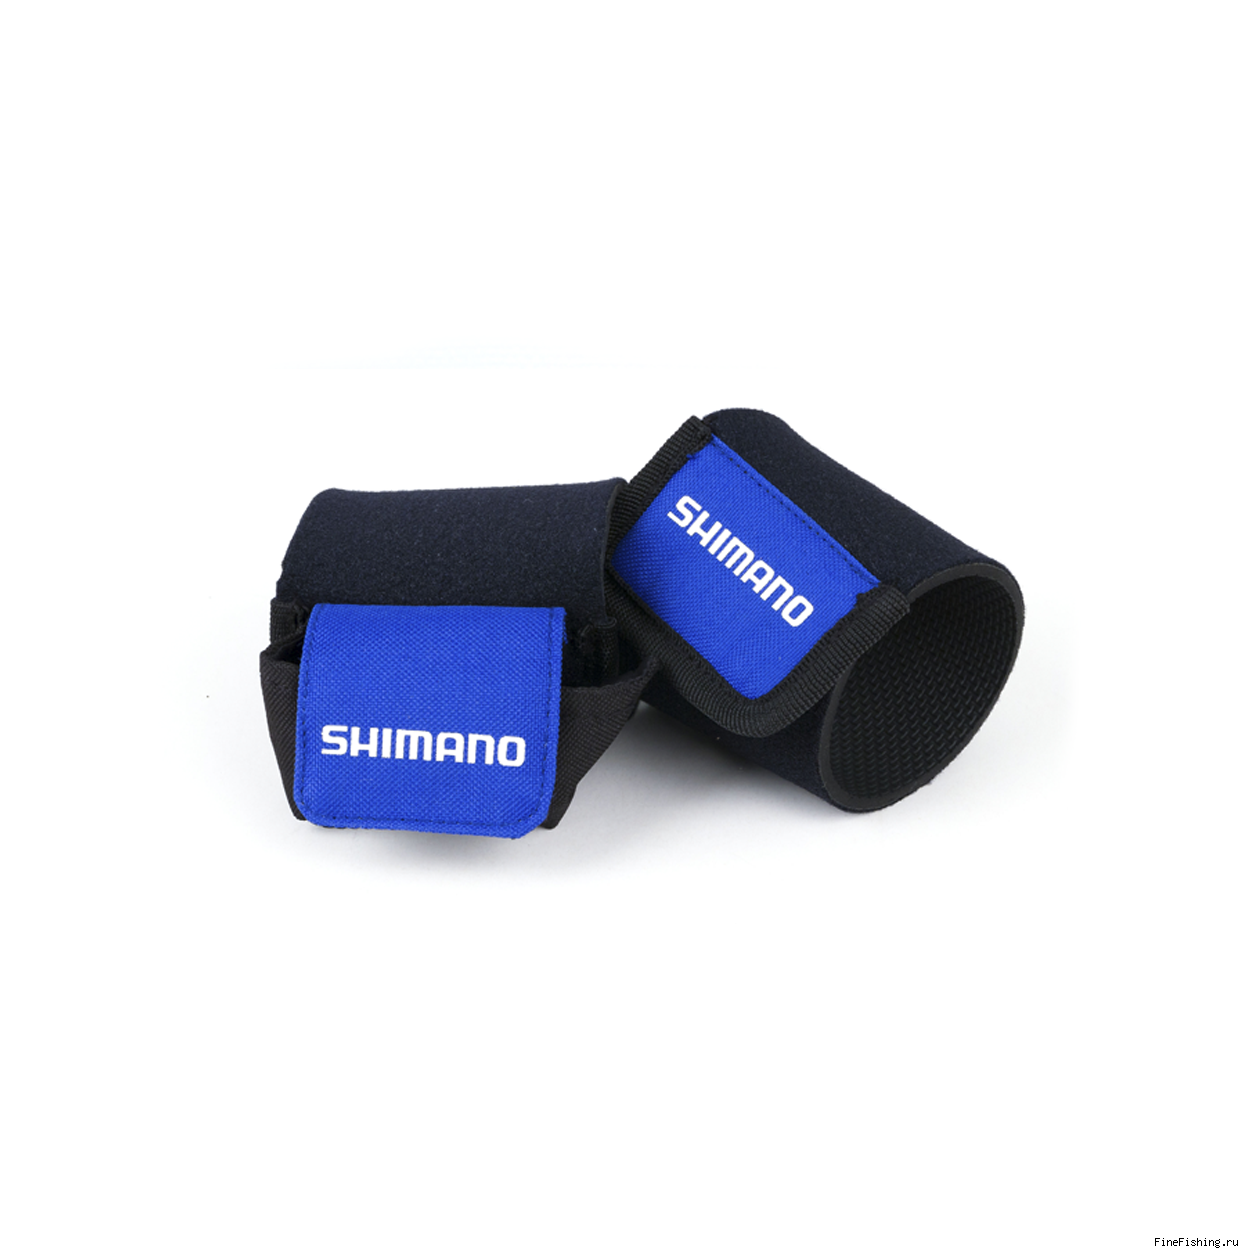 БАНДАЖ ДЛЯ УДИЛИЩ Shimano All-Round Rod Bands 2 pcs + lead pocket